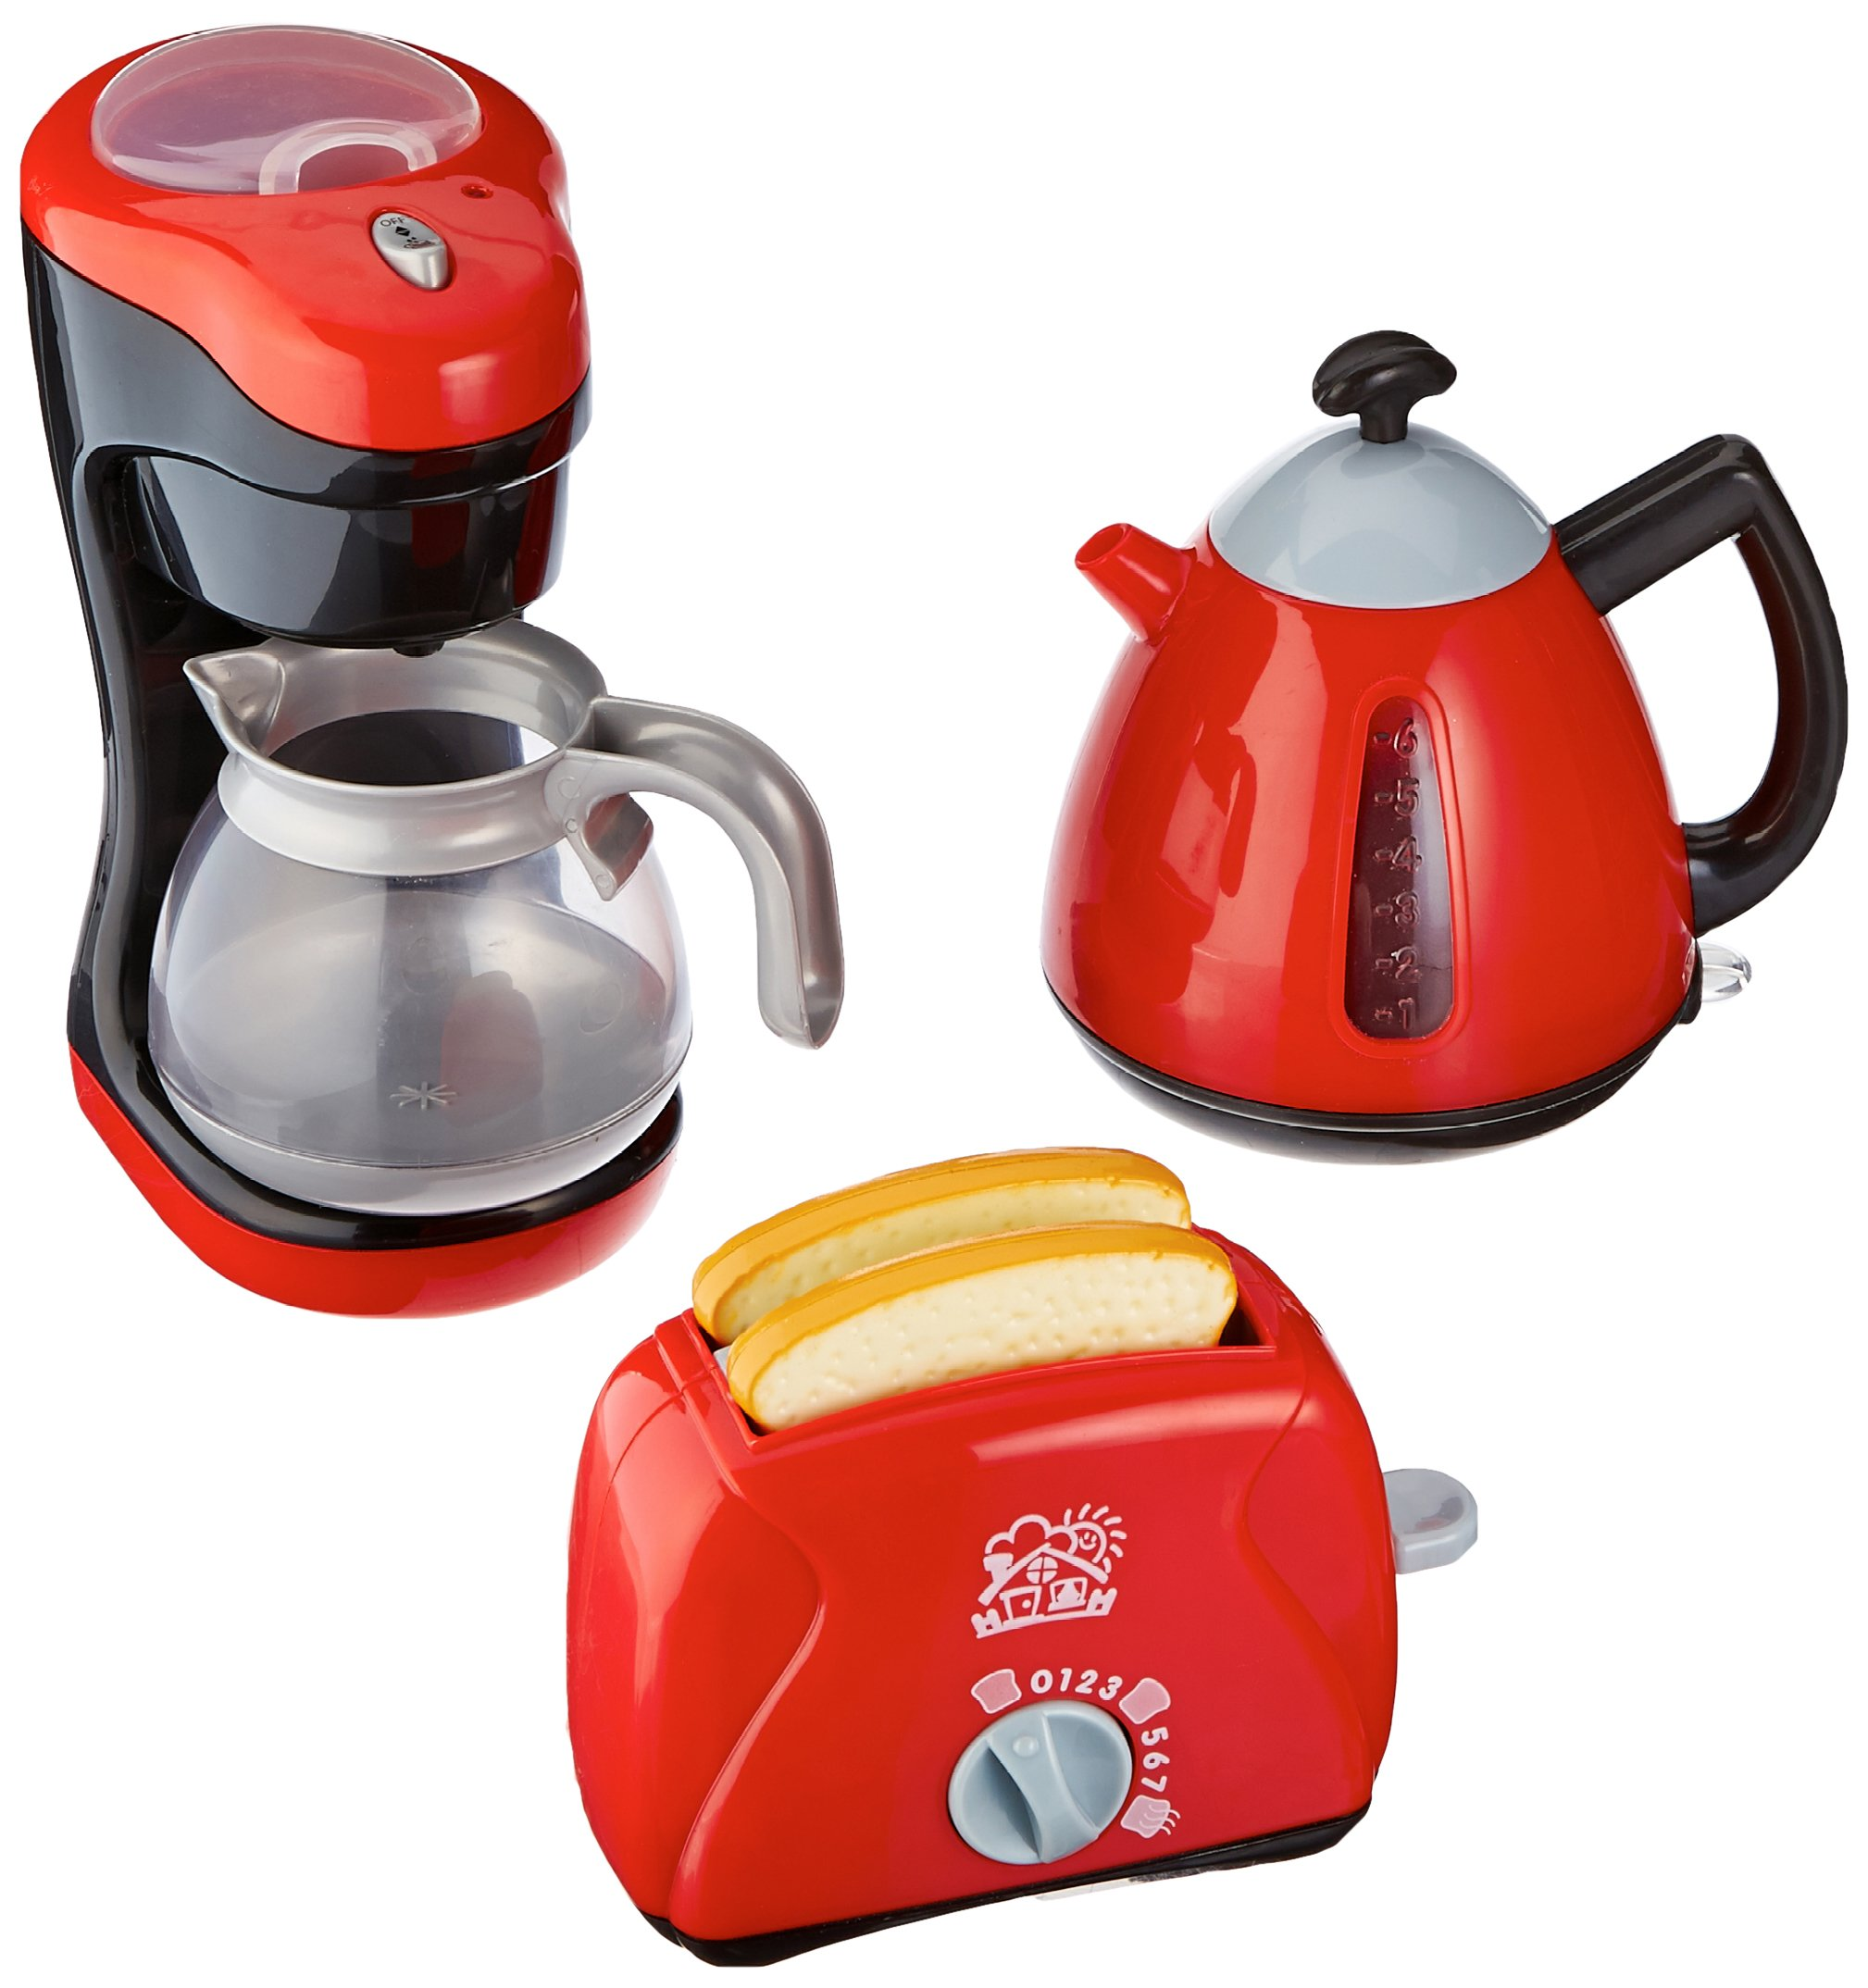 PlayGo Kitchen Chef Collection (My Toaster, Coffee Maker, Tea Time Kettle) for Your Little Chef | Pretend Play Home Kitchen Appliances 3Piece Play Set for Kids Children Toddlers by PlayGo